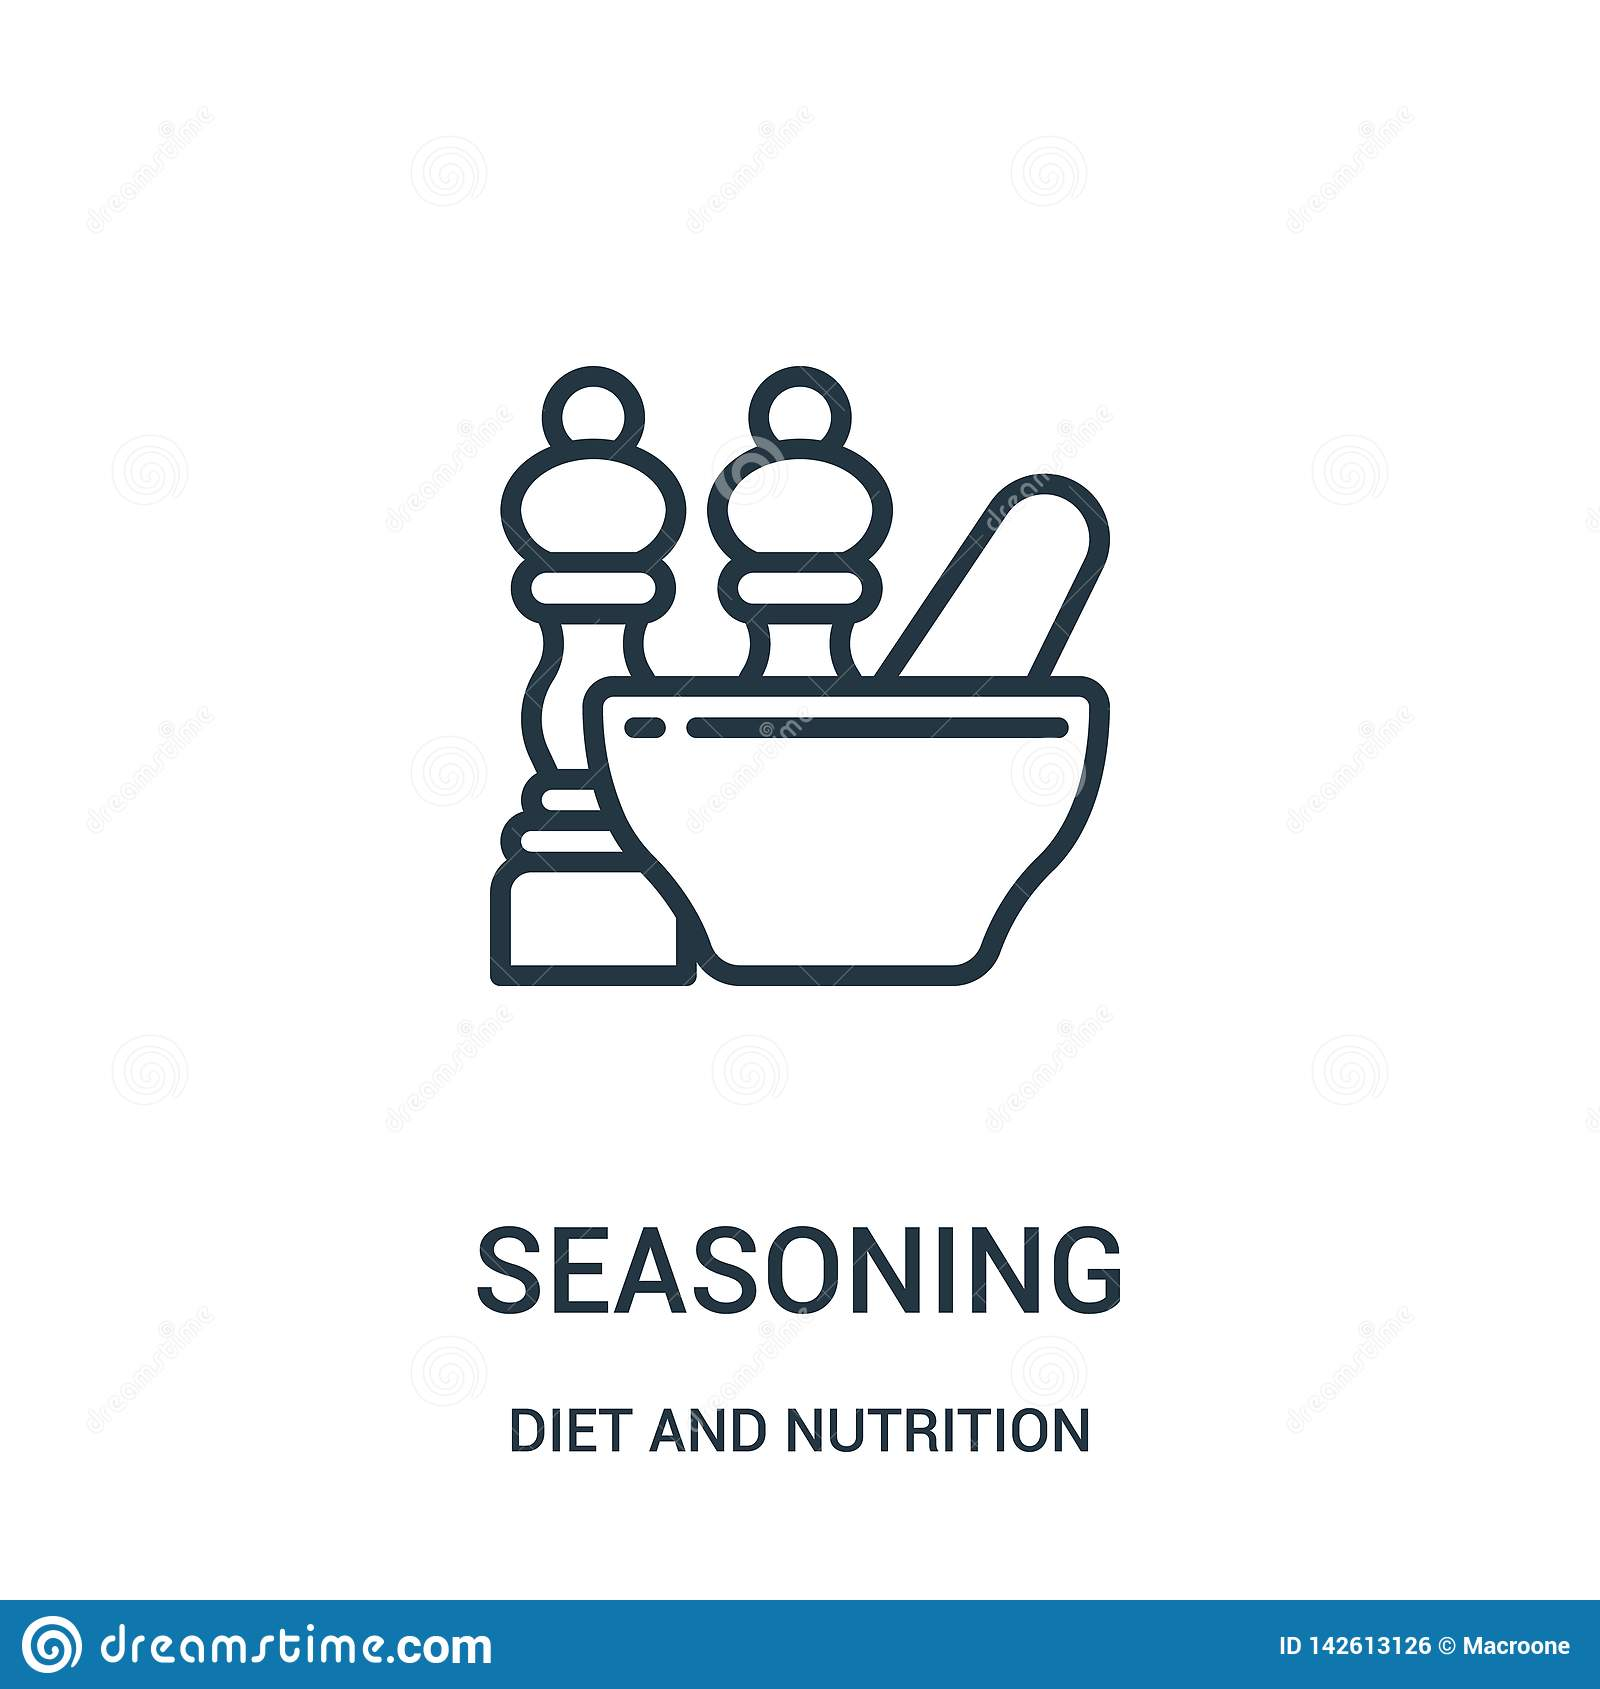 seasoning icon vector from diet and nutrition collection. Thin line seasoning outline icon vector illustration. Linear symbol